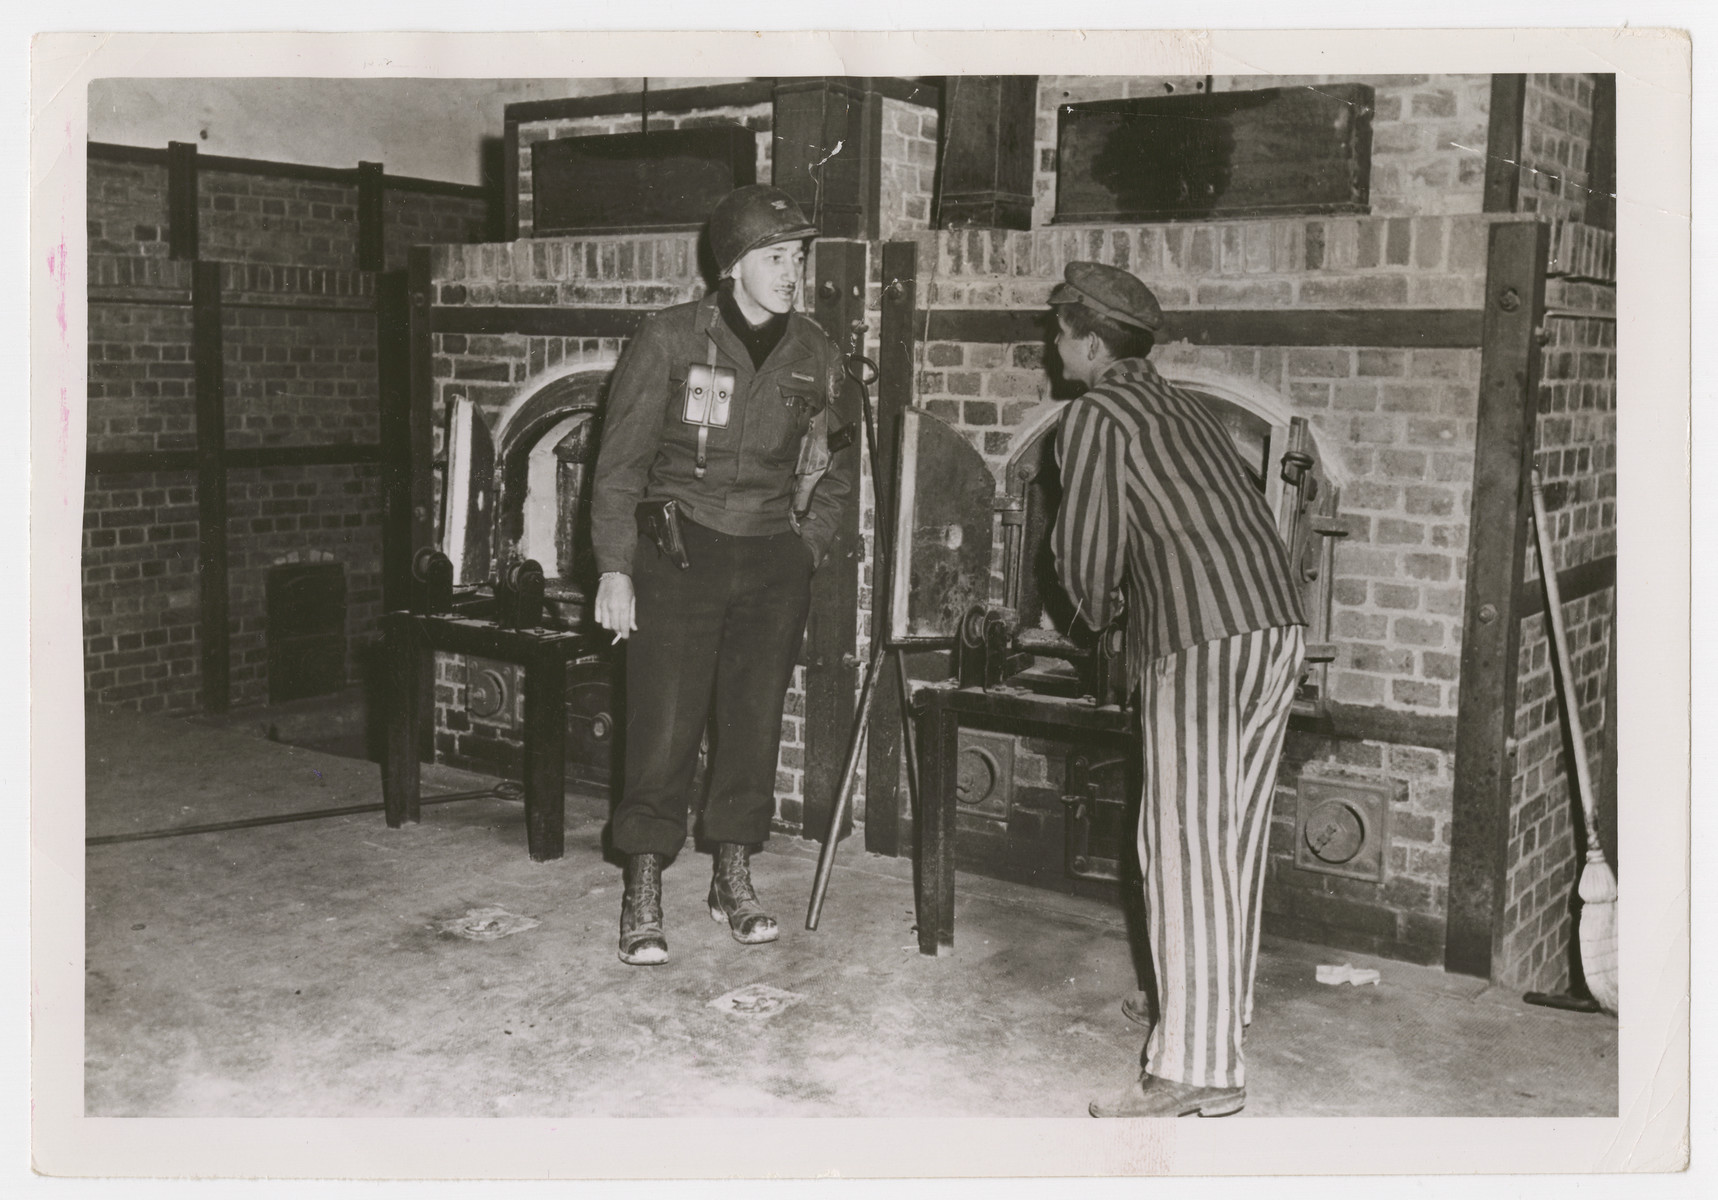 """A Dachau survivor shows the crematoria to an American soldier.   The original Signal Corps caption reads, """"Dachau atrocity camp a former prisoner freed when 7th U.S. Army troops  [?]rated the infa[?], shows [?] crematory furn[?]  [?]ol  Walter O'Brien whose men [?]red the camp."""